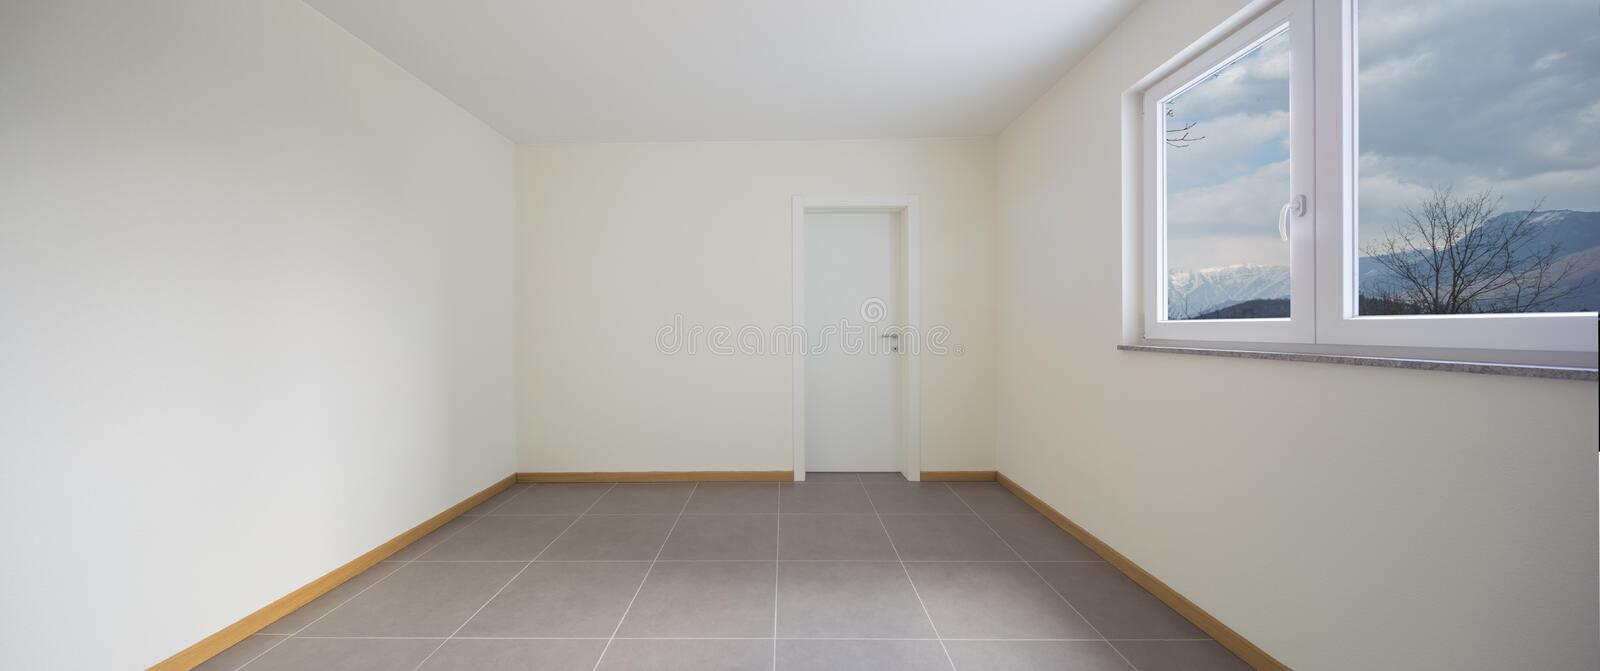 New, clean and empty room just renovated stock photo